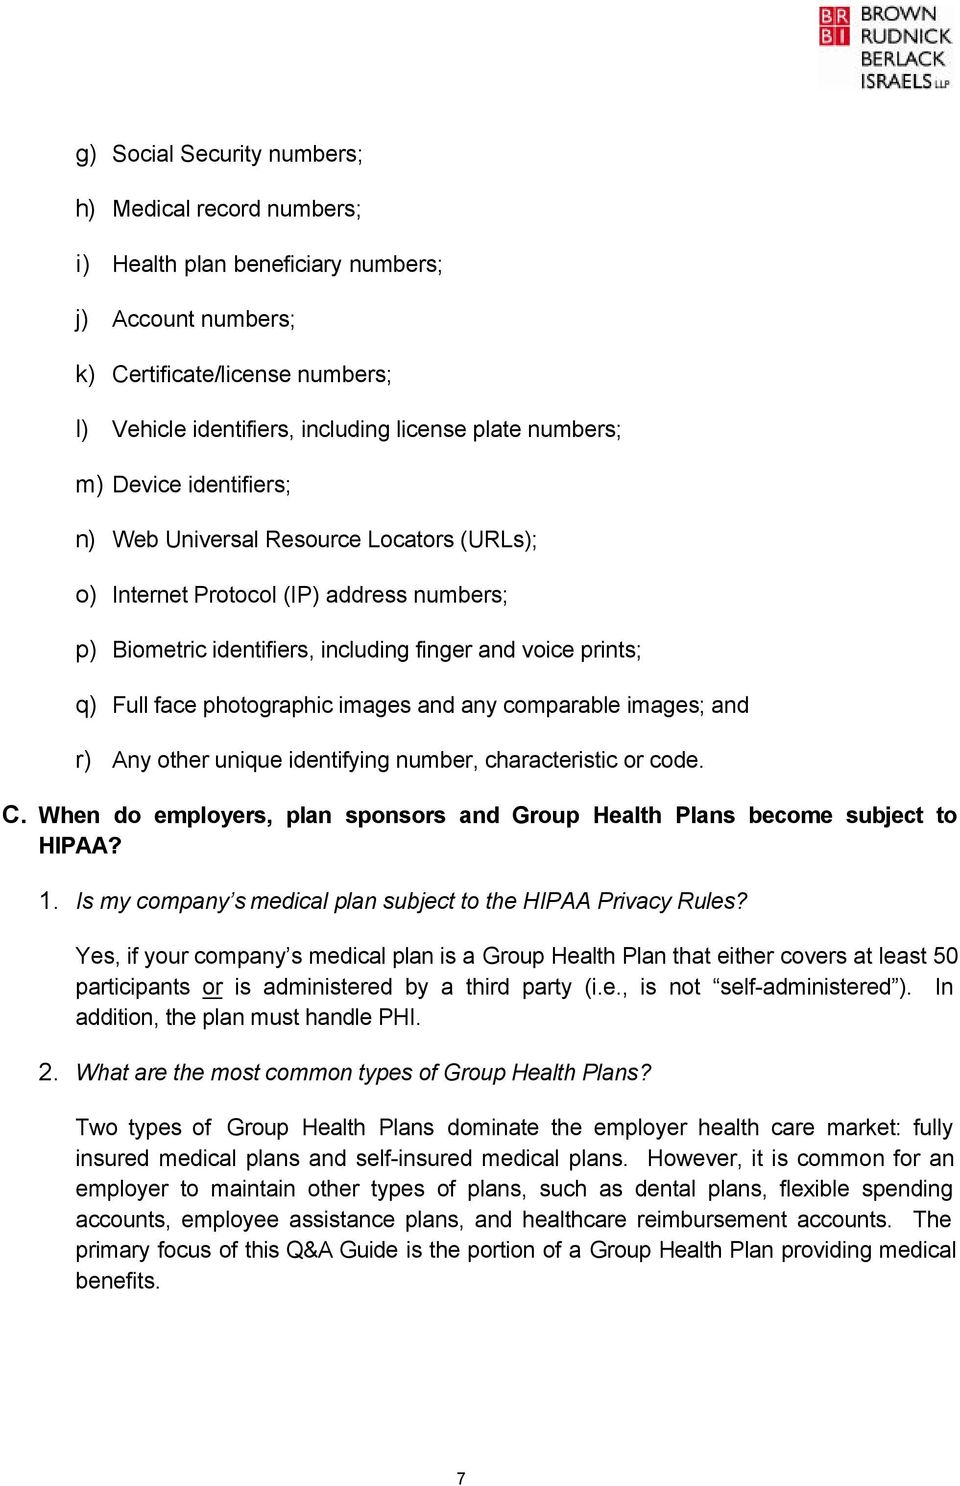 images and any comparable images; and r) Any other unique identifying number, characteristic or code. C. When do employers, plan sponsors and Group Health Plans become subject to HIPAA? 1.